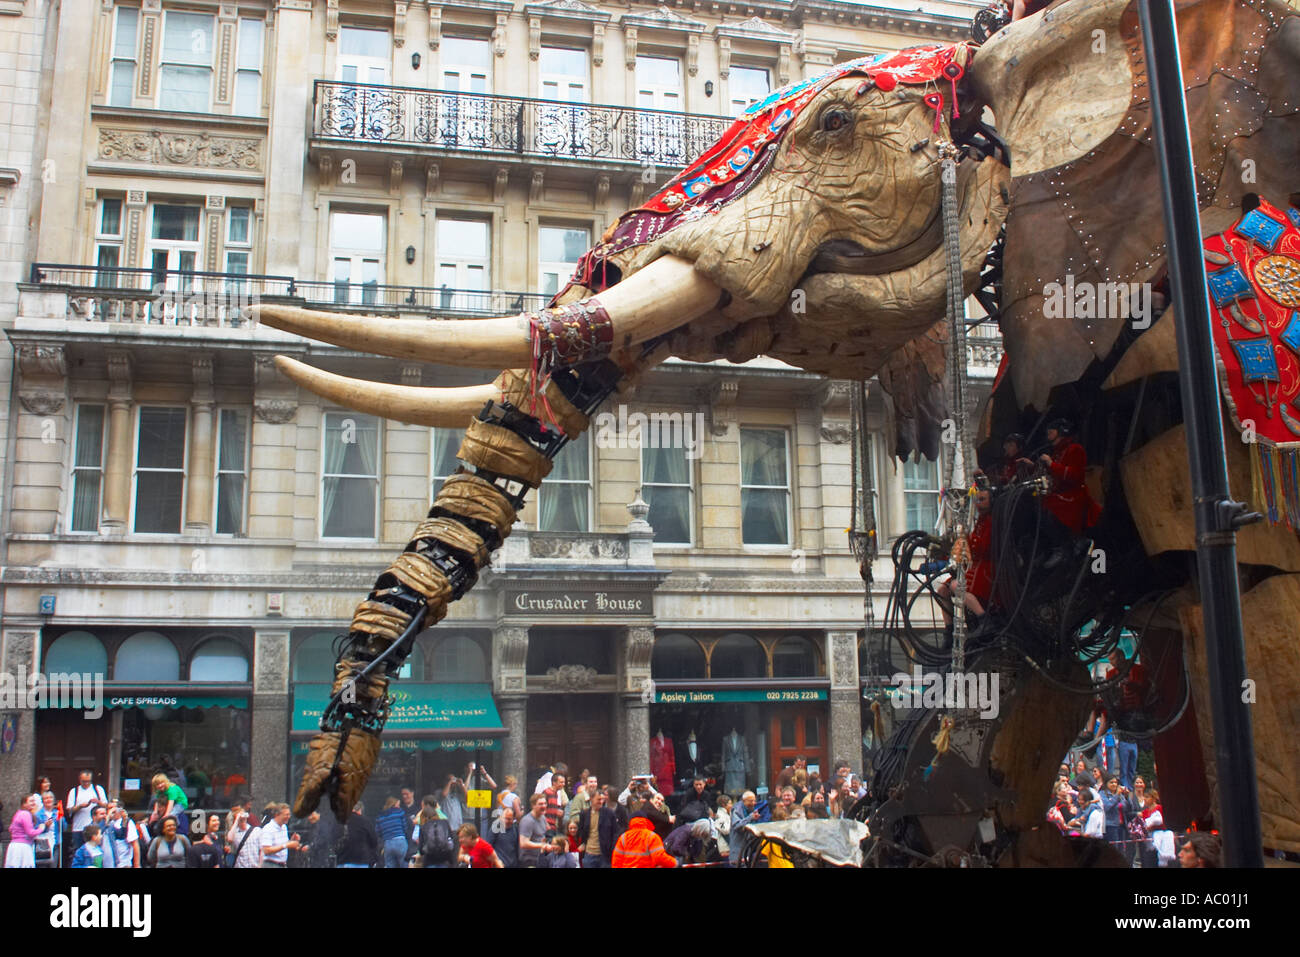 The Sultans Elephant trumpets loudly as it makes its way down Pall Mall - Stock Image